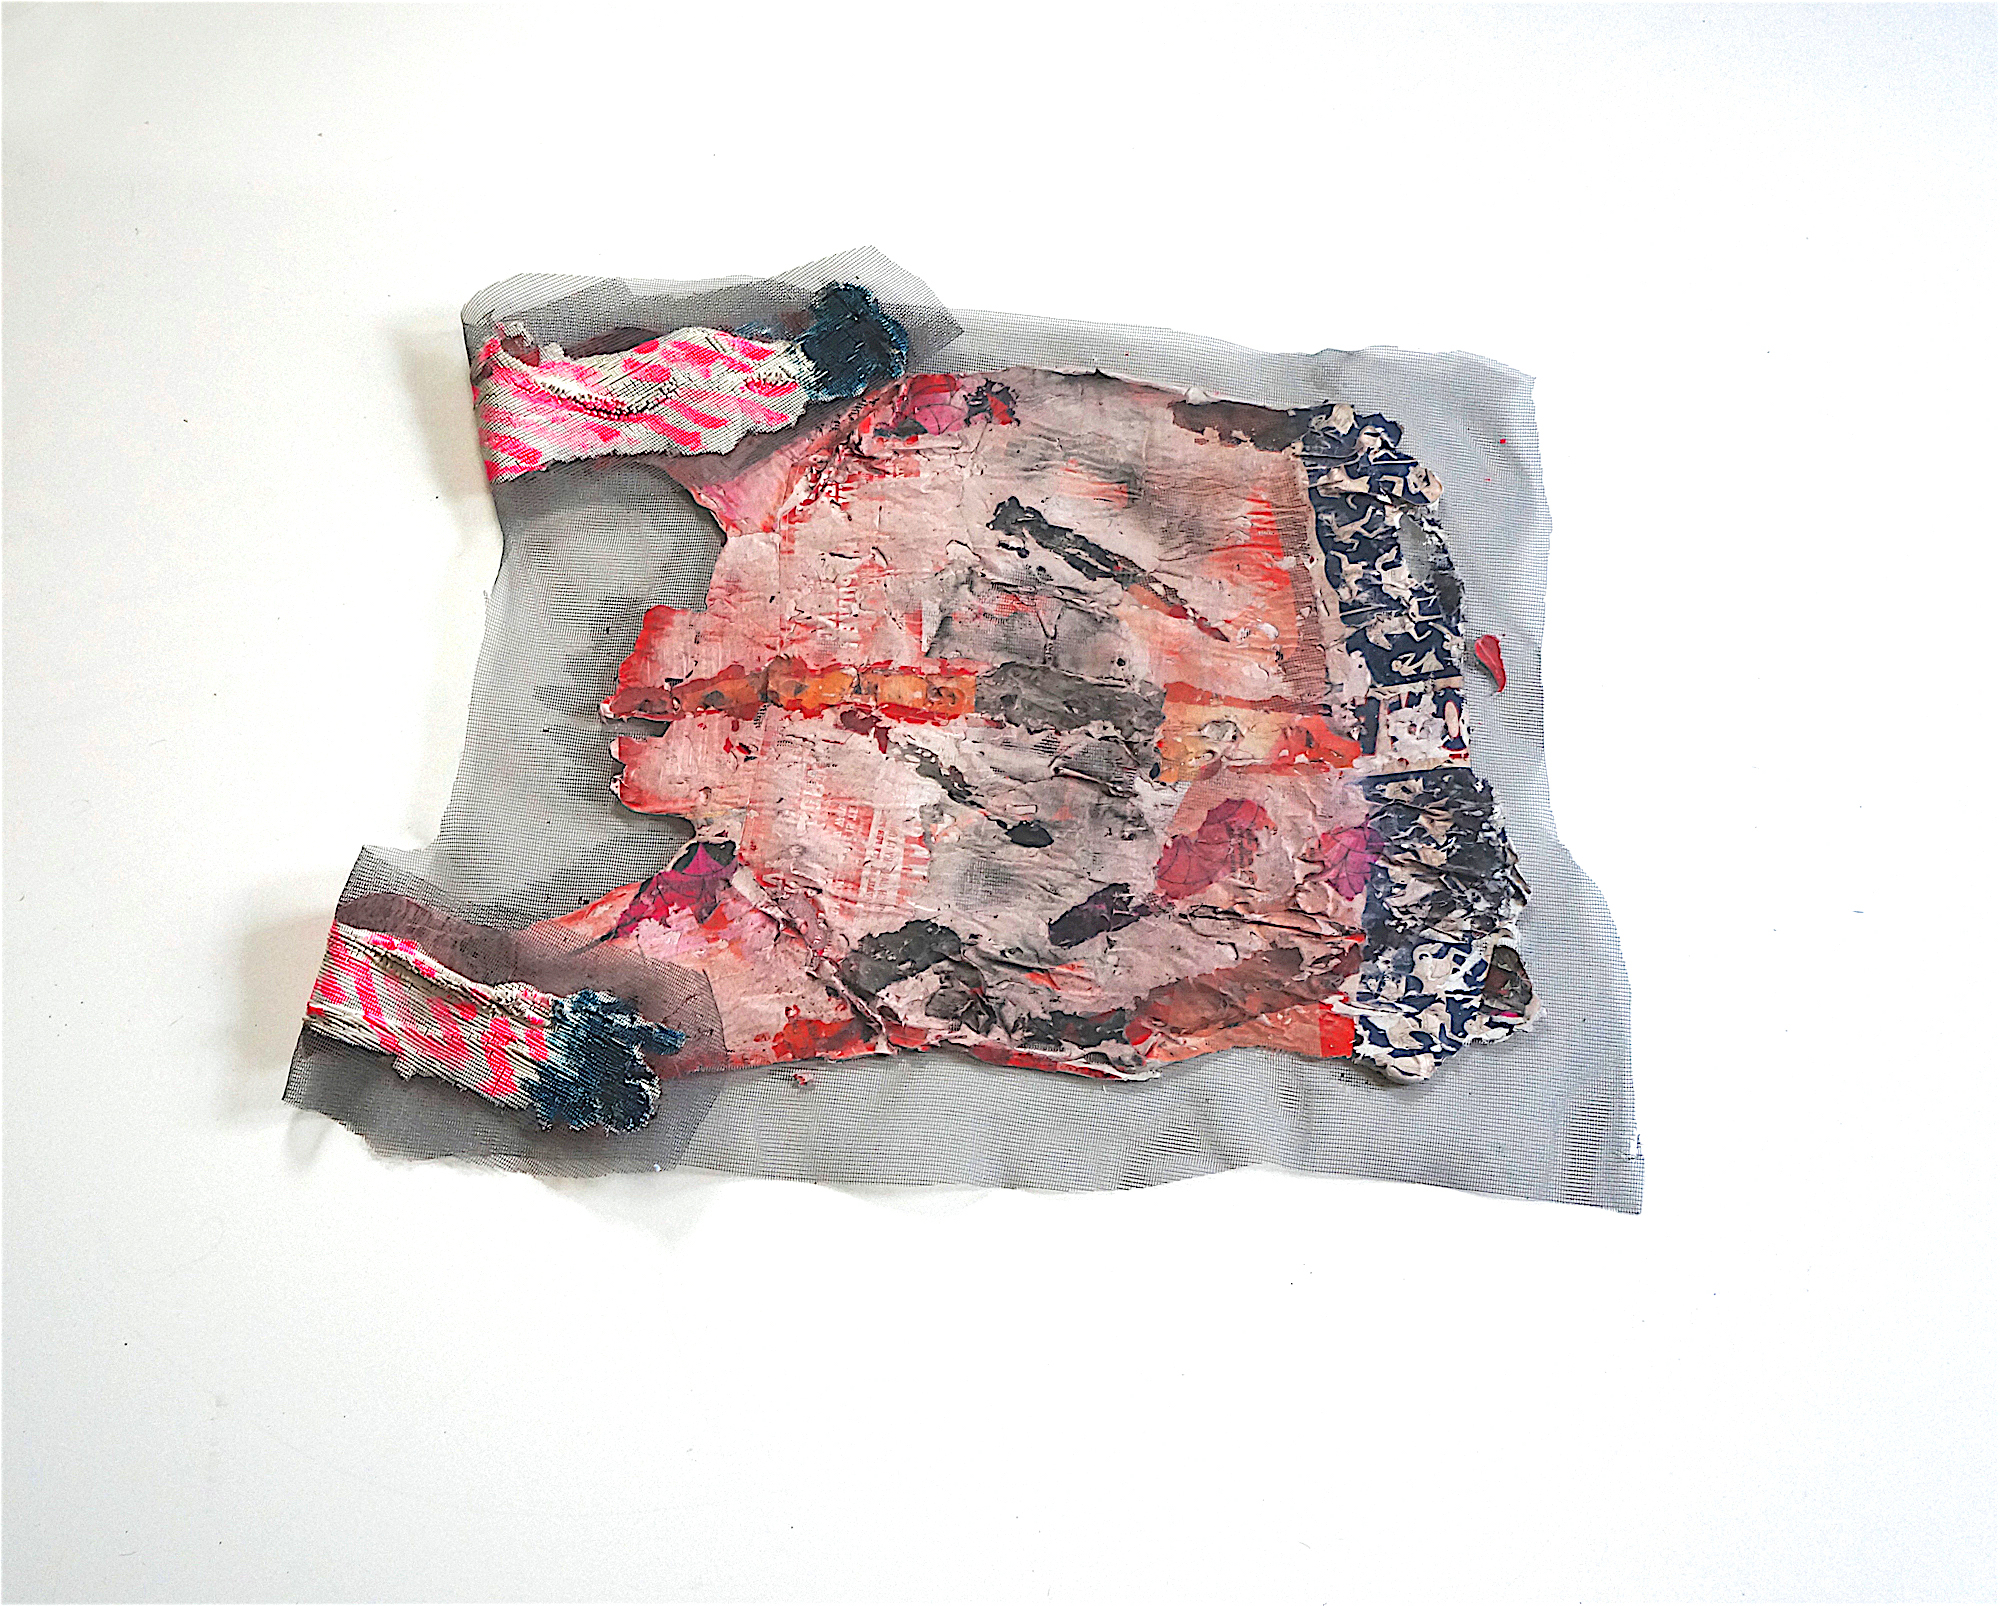 Eleanor Aldrich, Floor Sweater, caulking, paper, acrylic and ink on screen, approx. 20 x 14 inches, 2017